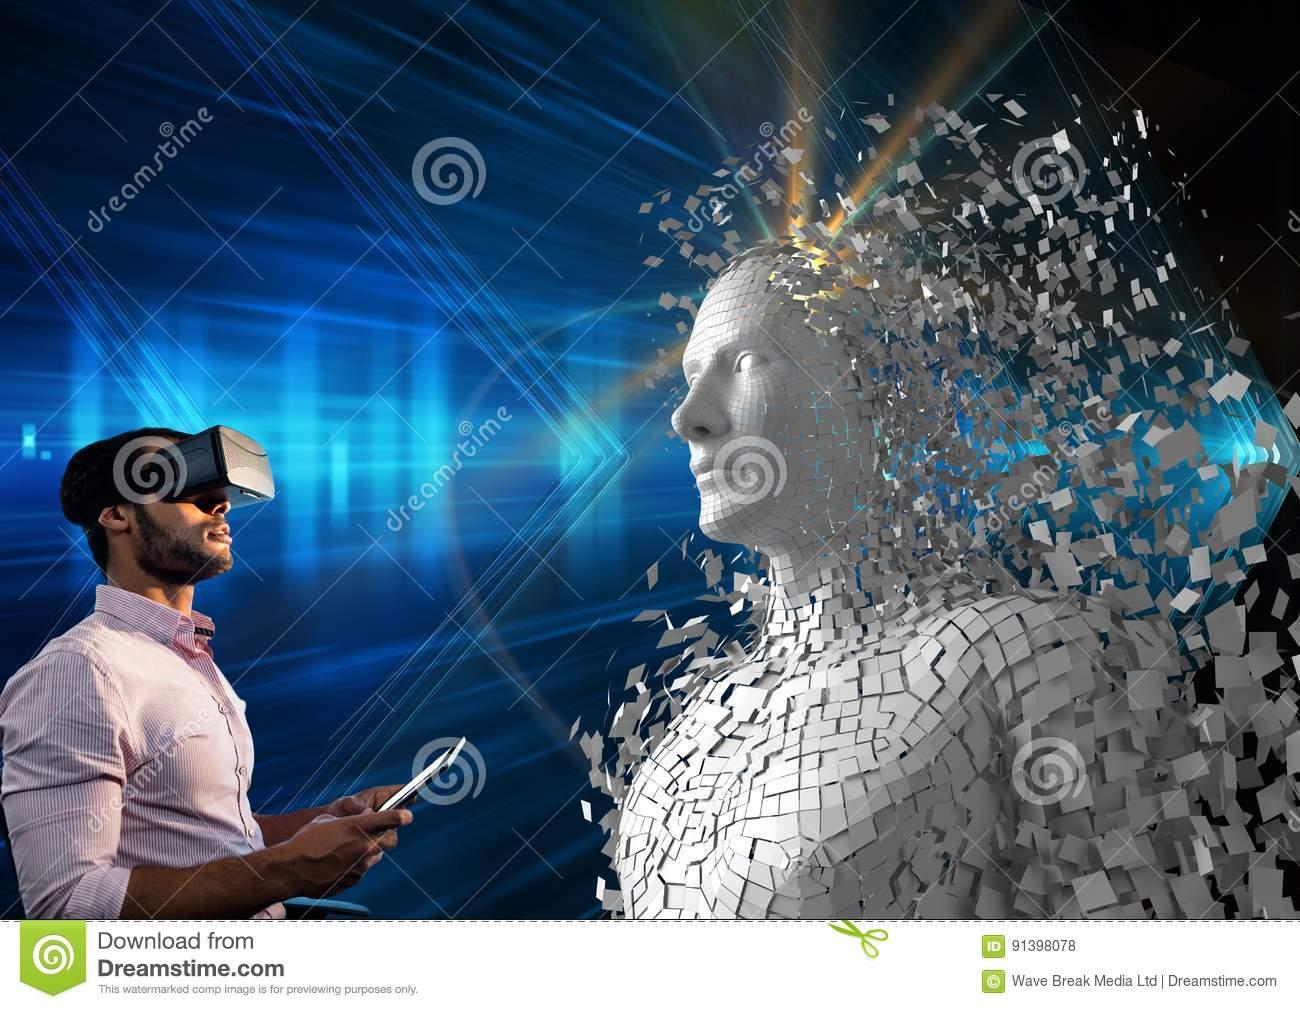 Digital composite image of man using digital tablet and VR glasses by 3d human